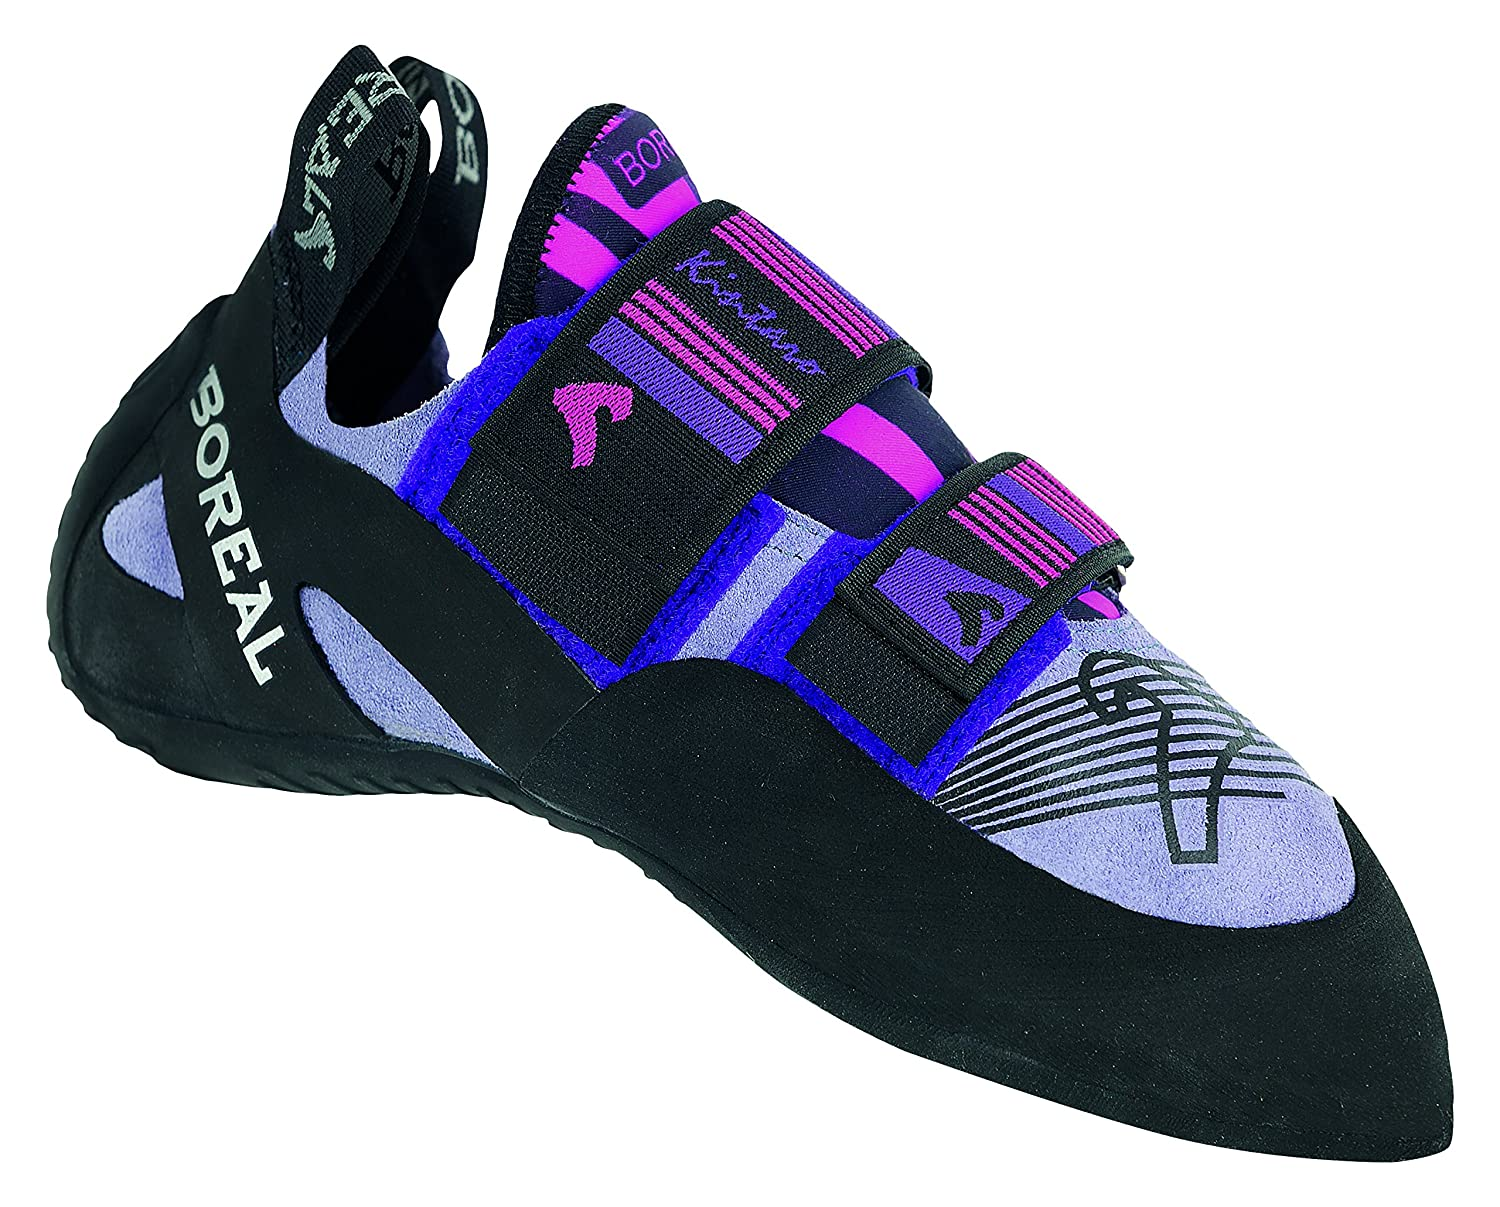 Boreal Climbing Shoes Womens Kintaro Leather Black Purple Pink 11563